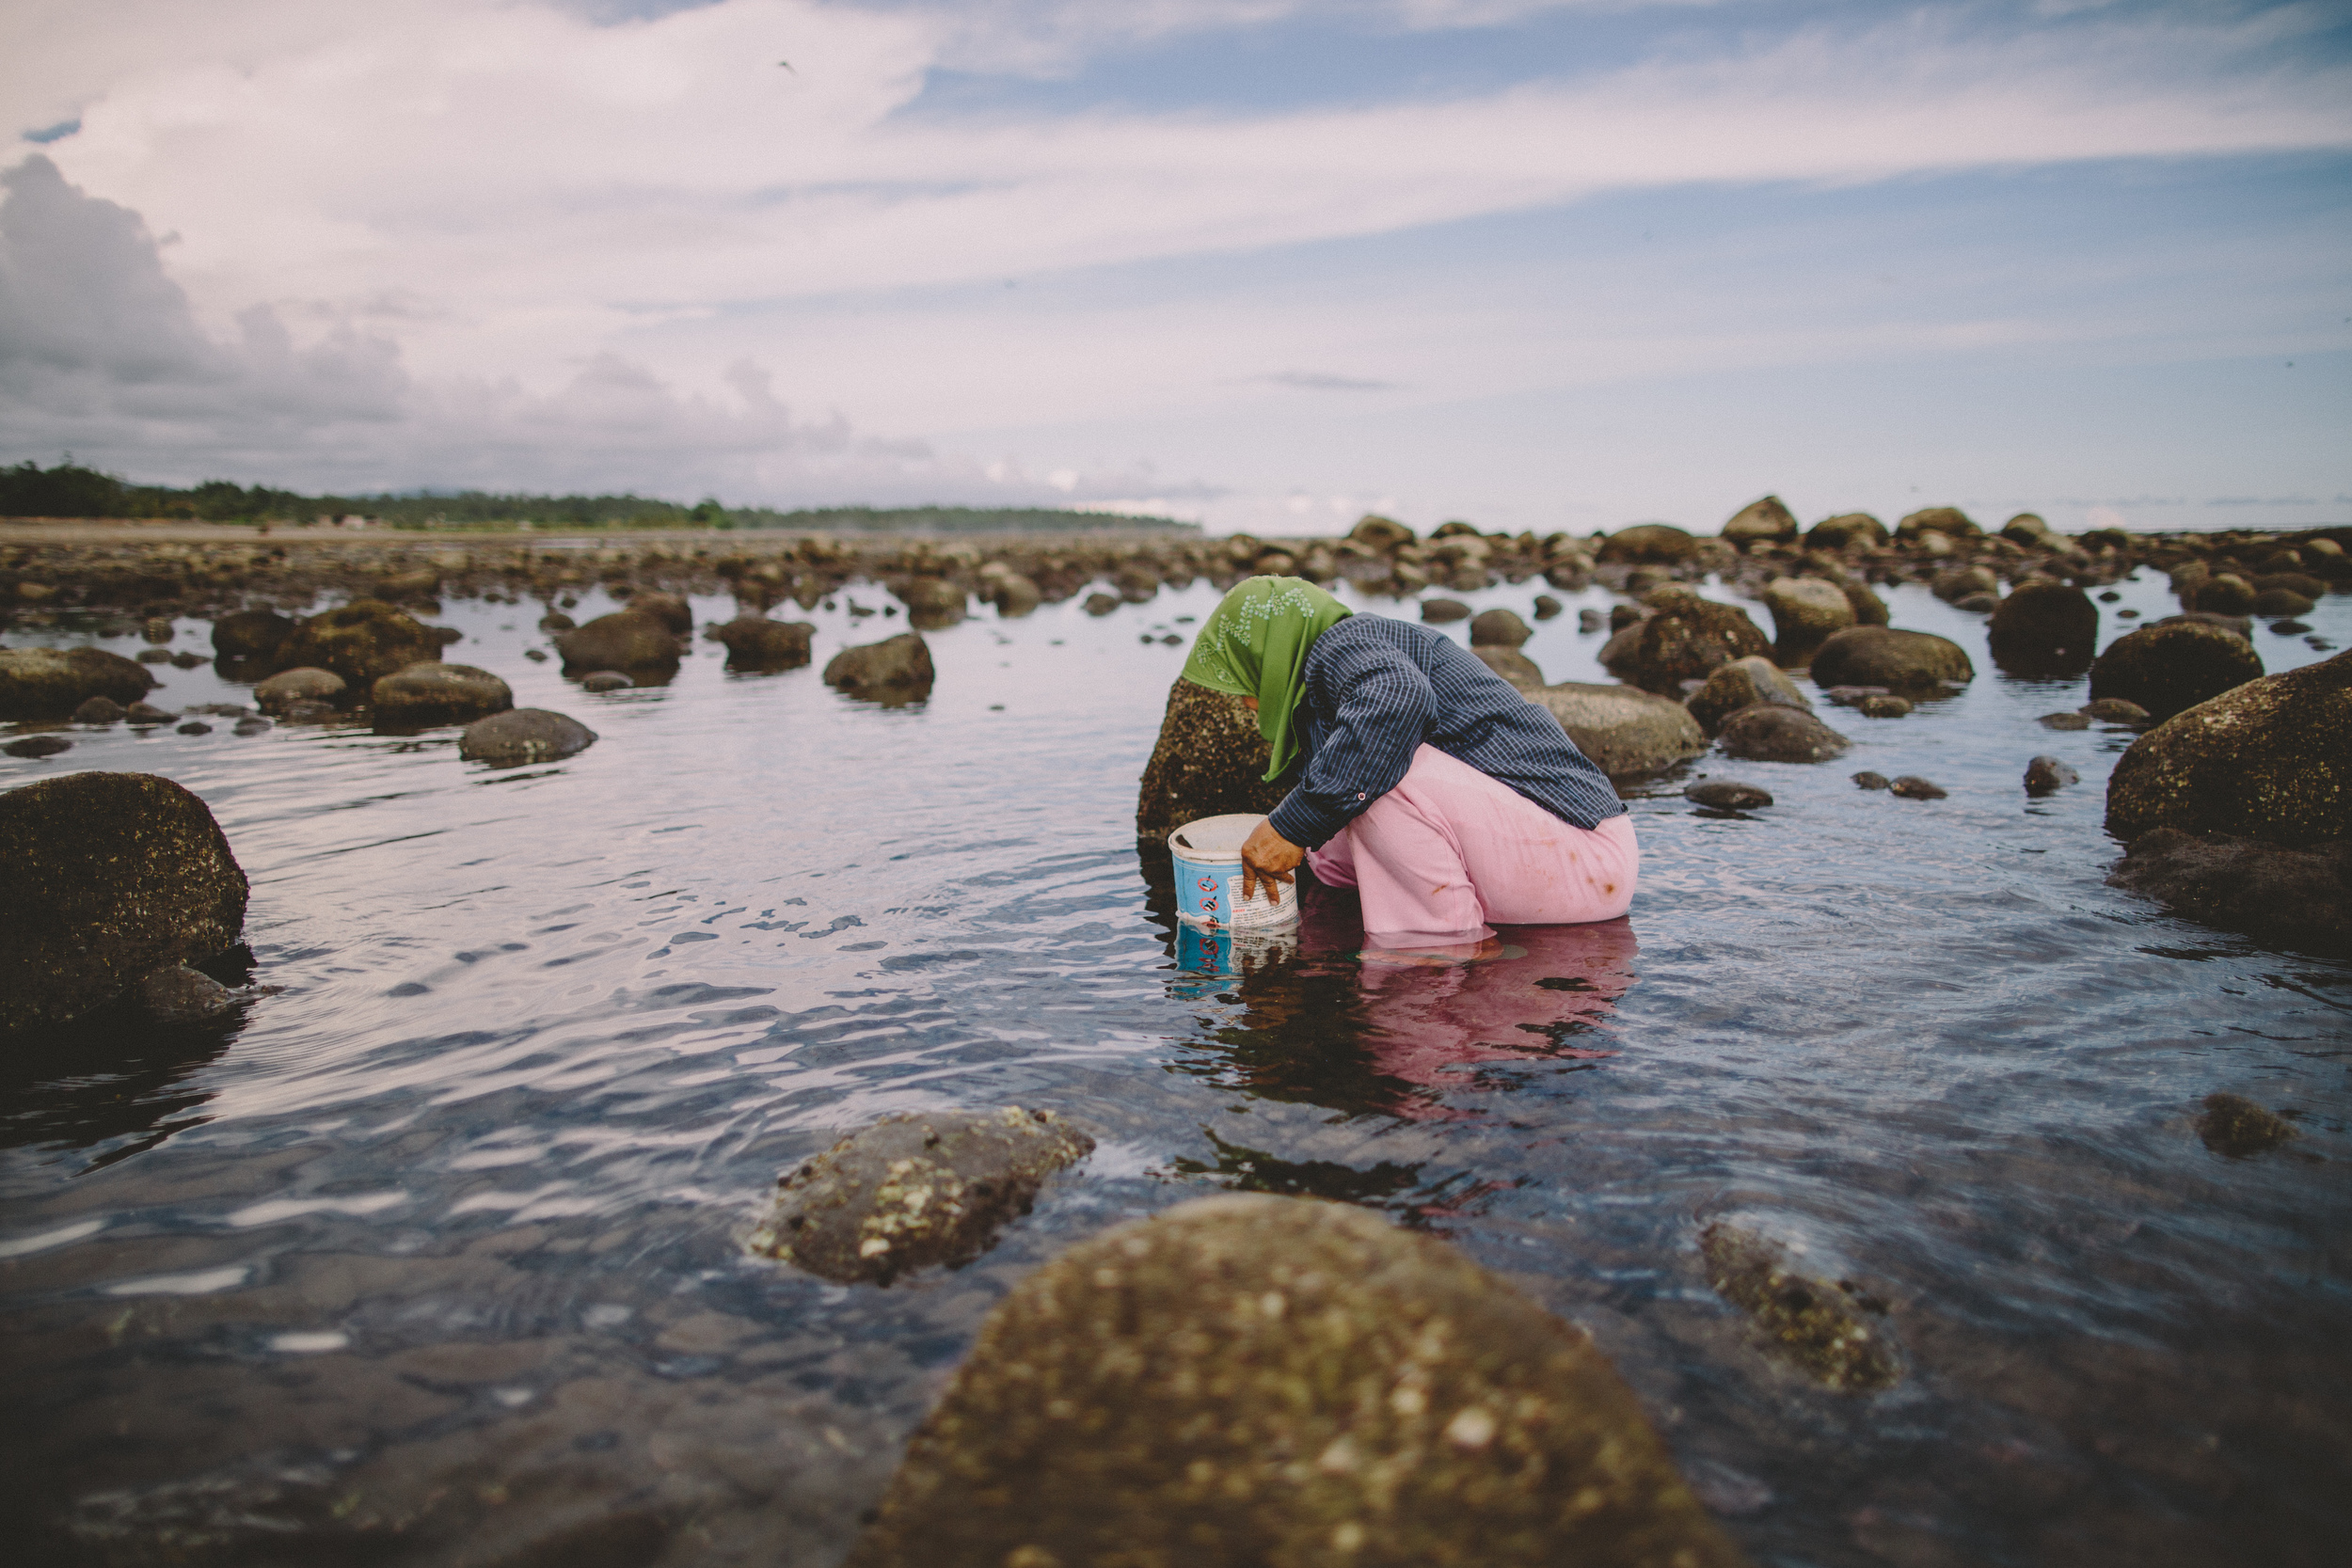 Bali_Indonesia_photo_journalism_shellfish_collecting_global_eyes_media_006.jpg